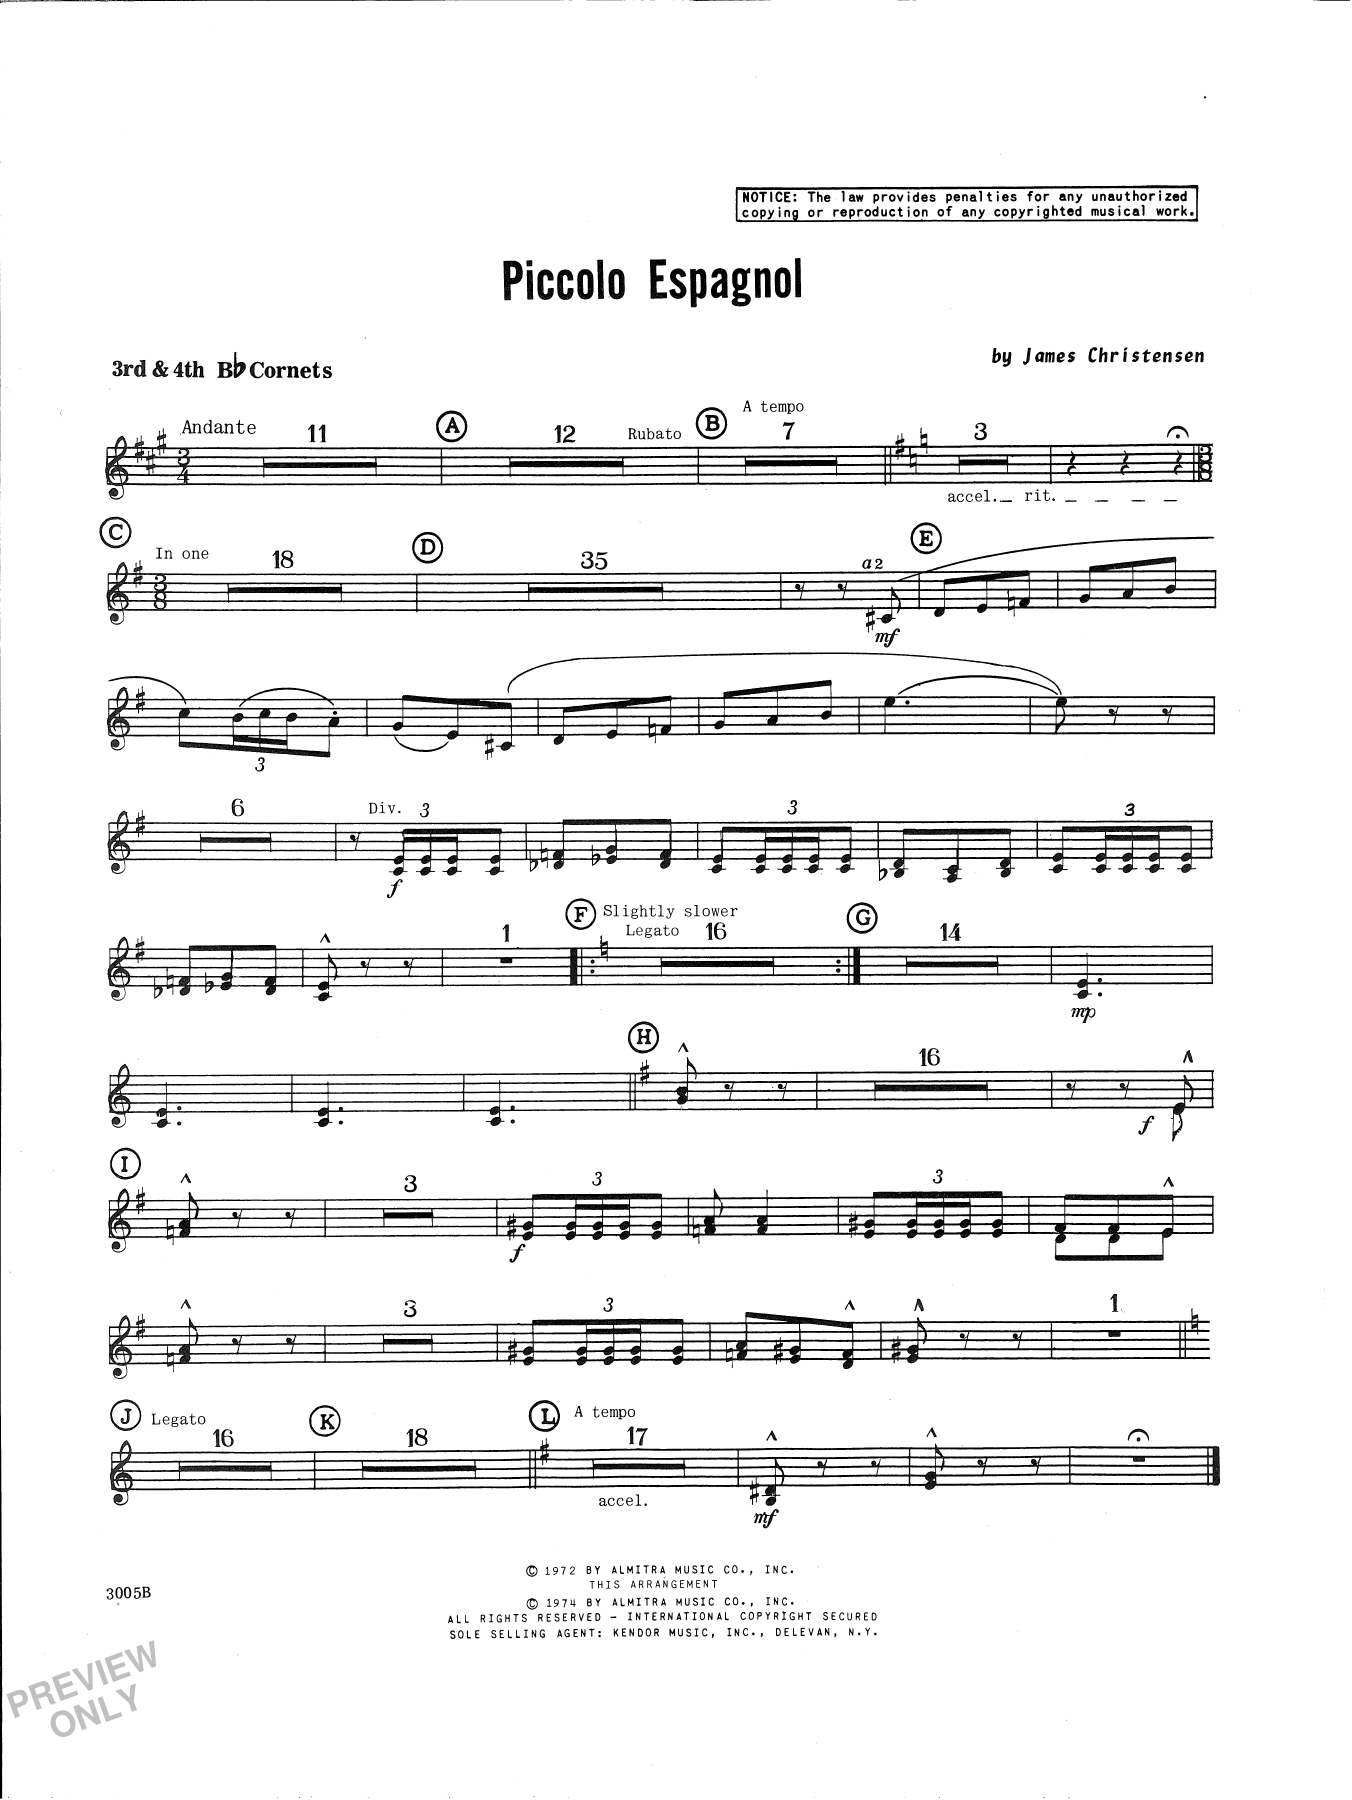 James Christensen Piccolo Espagnol - 3rd & 4th Bb Trumpet sheet music notes and chords. Download Printable PDF.